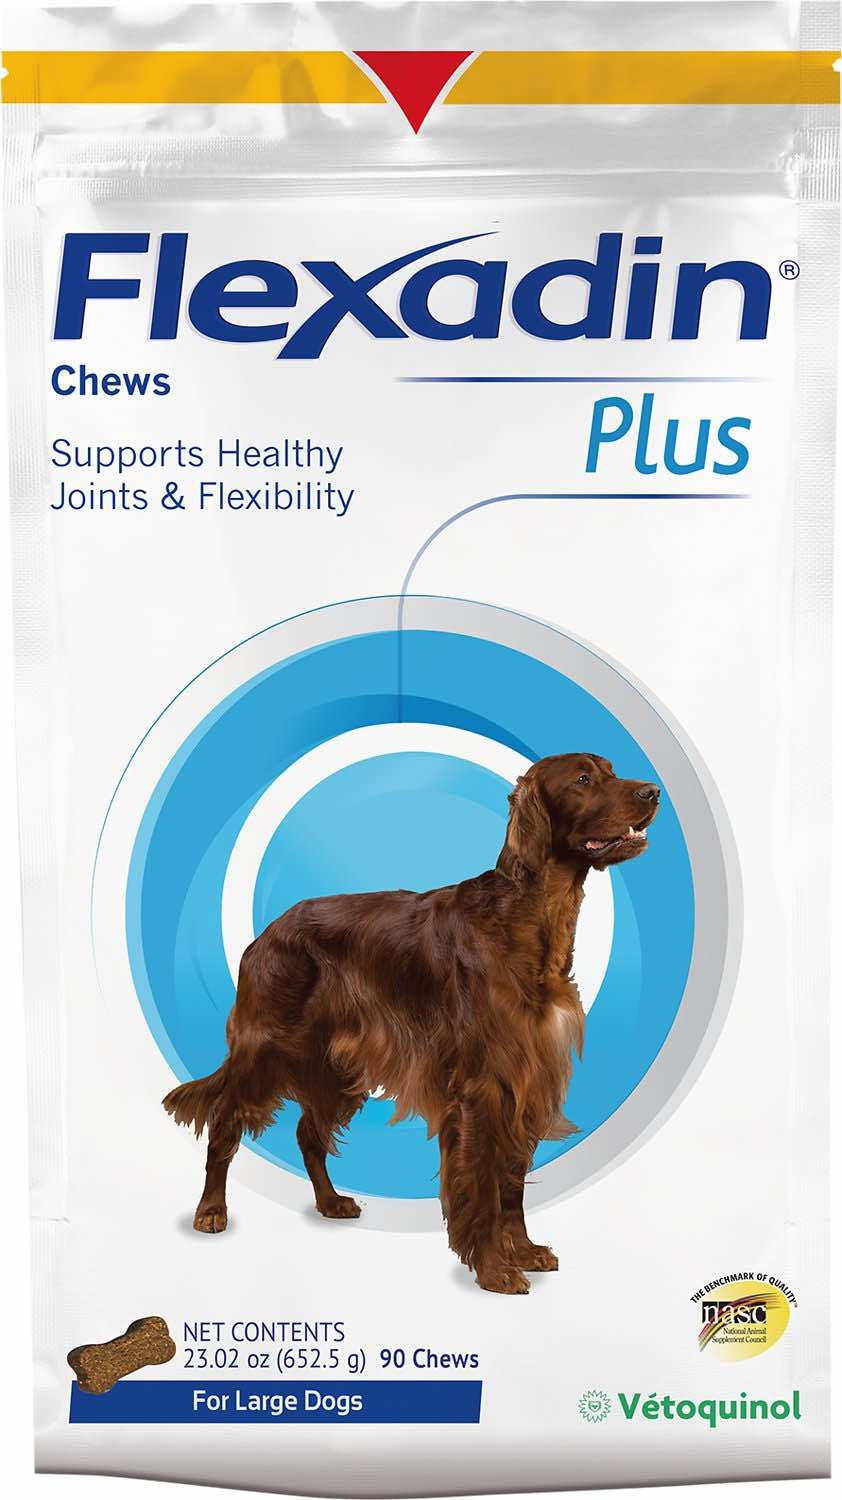 Flexadin Plus Chews 90 count for large dogs 1